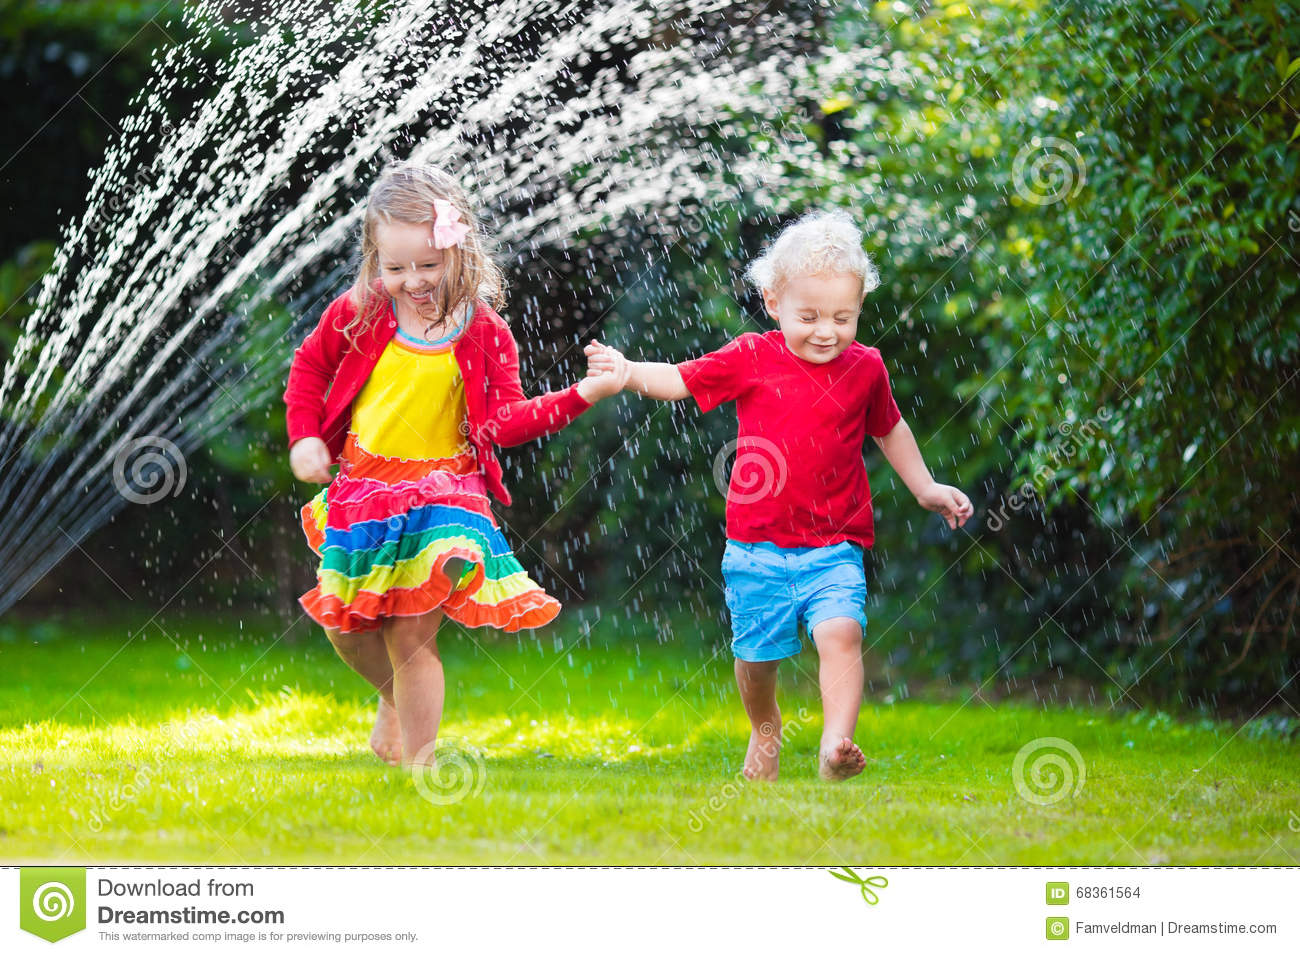 Kids playing with garden sprinkler stock photo image for Childrens play yard